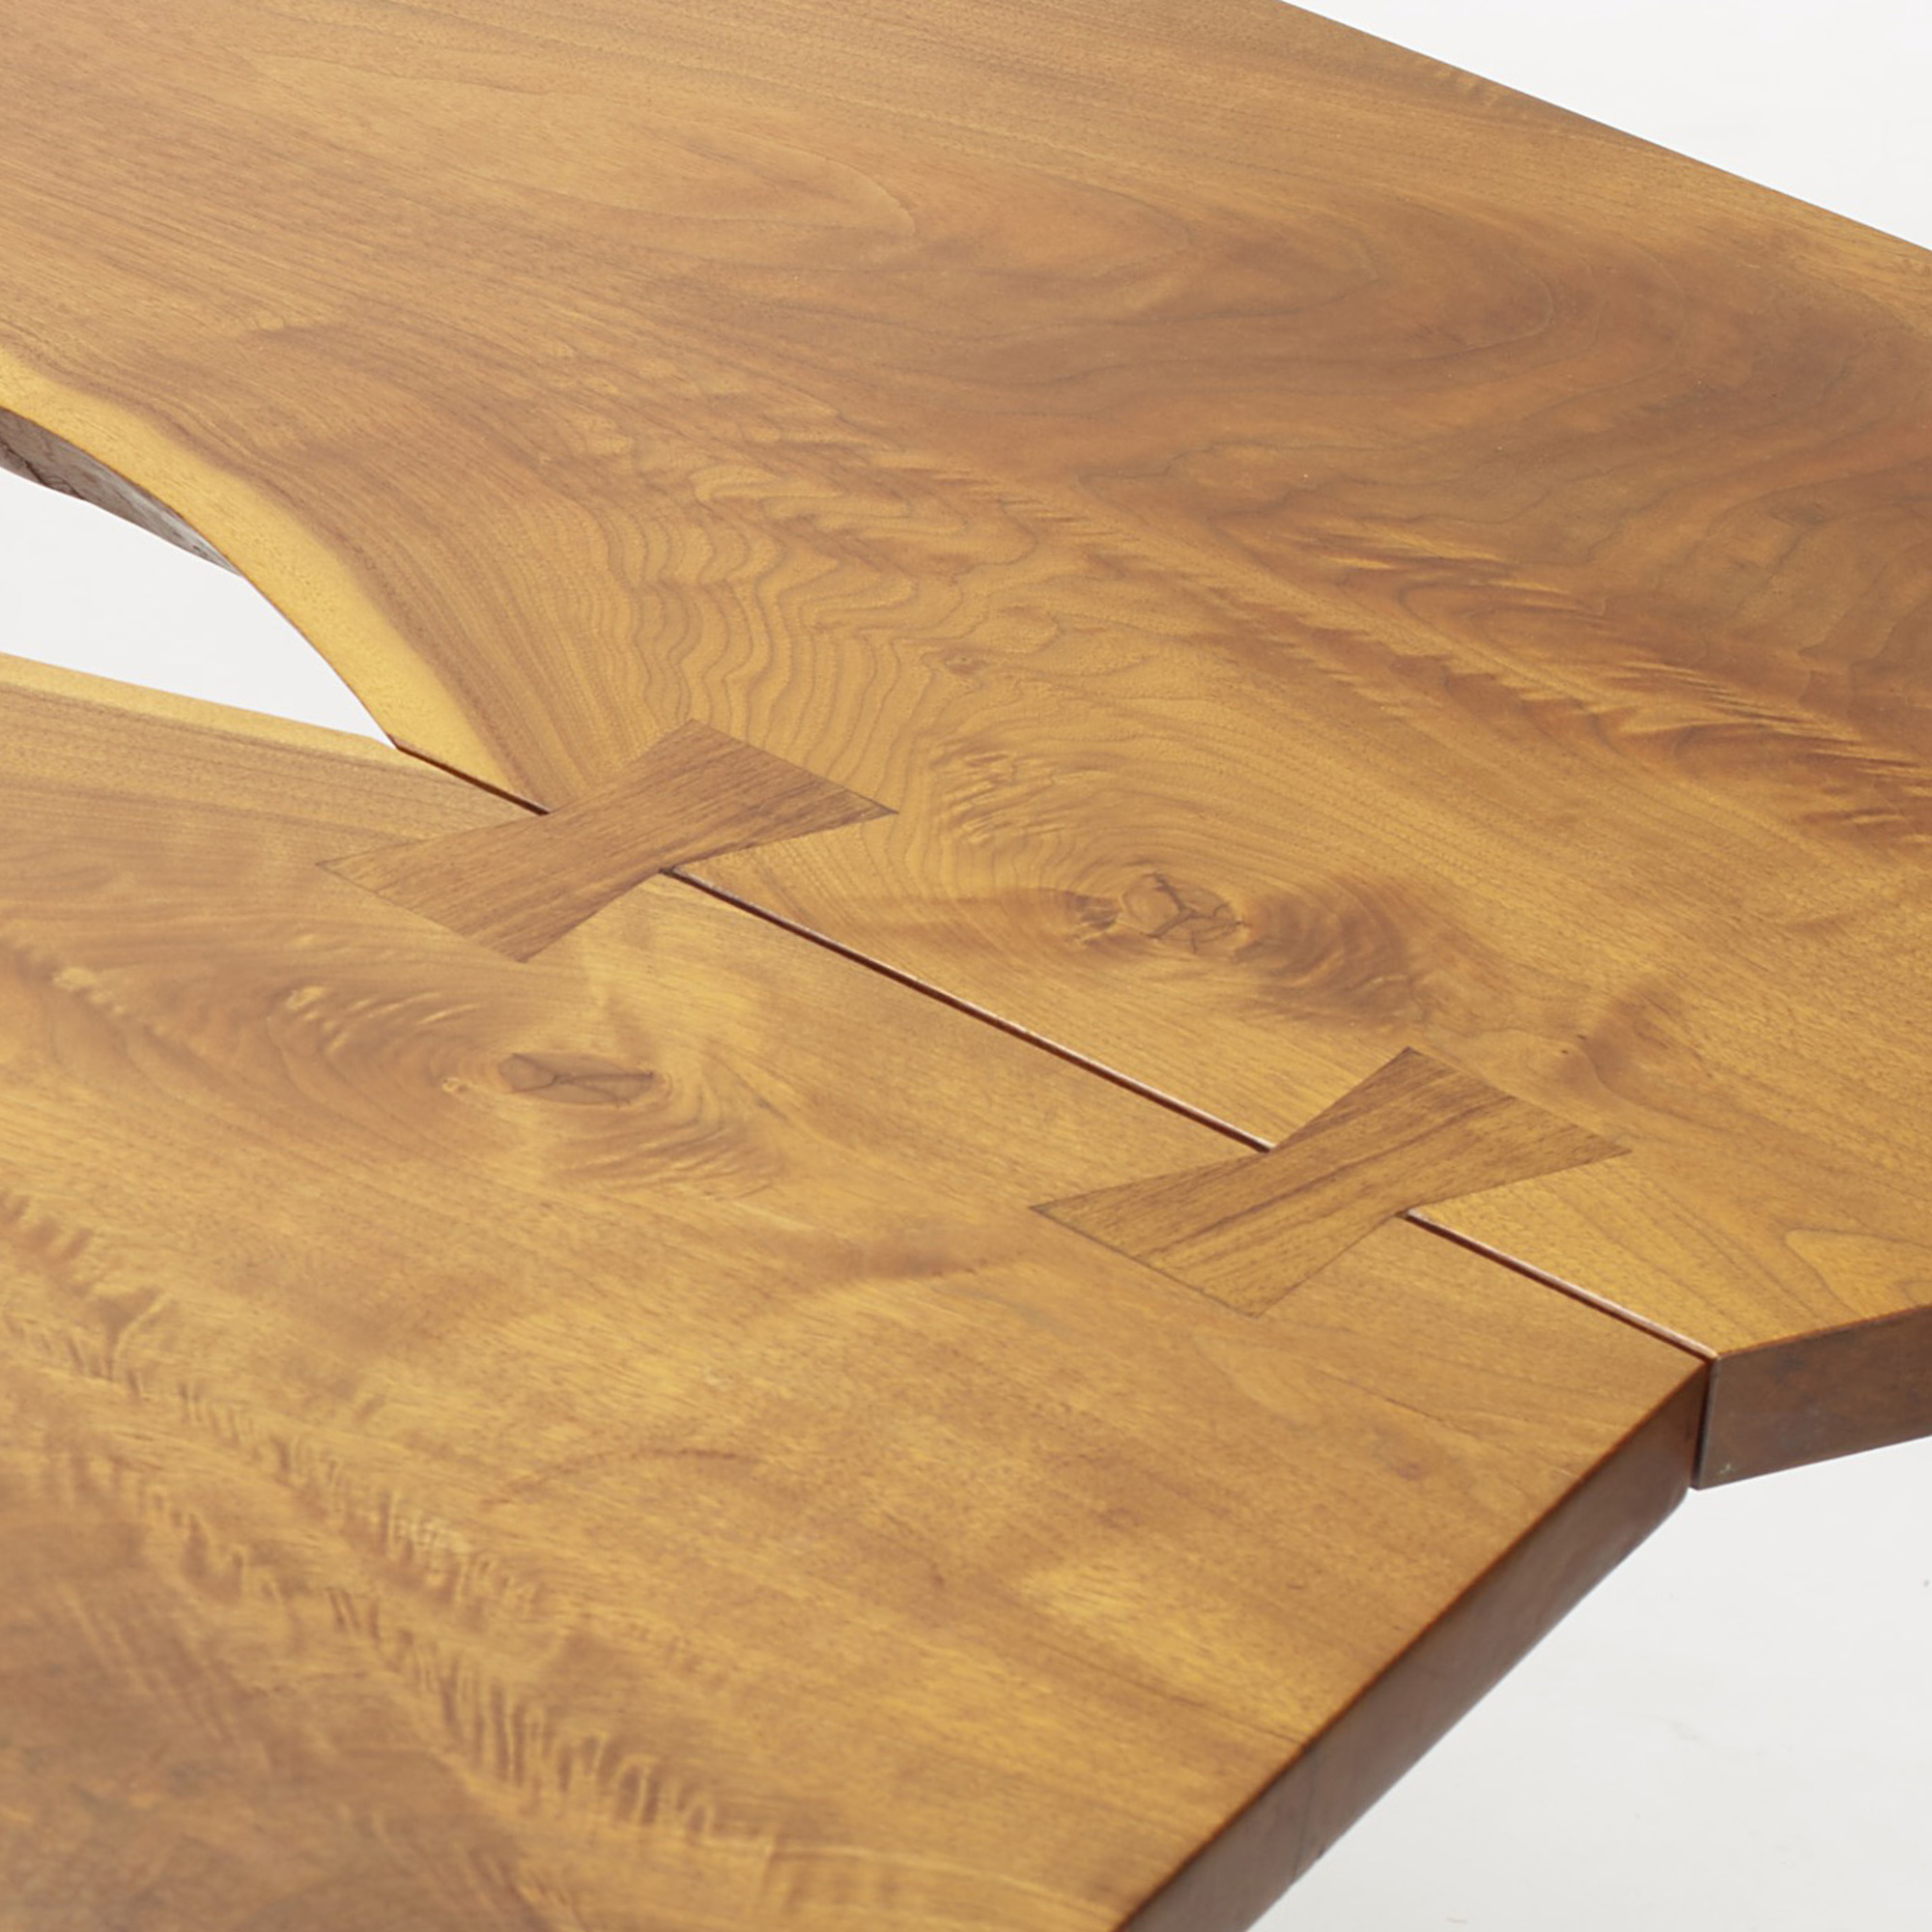 102: George Nakashima / early and important Trestle dining table (4 of 4)